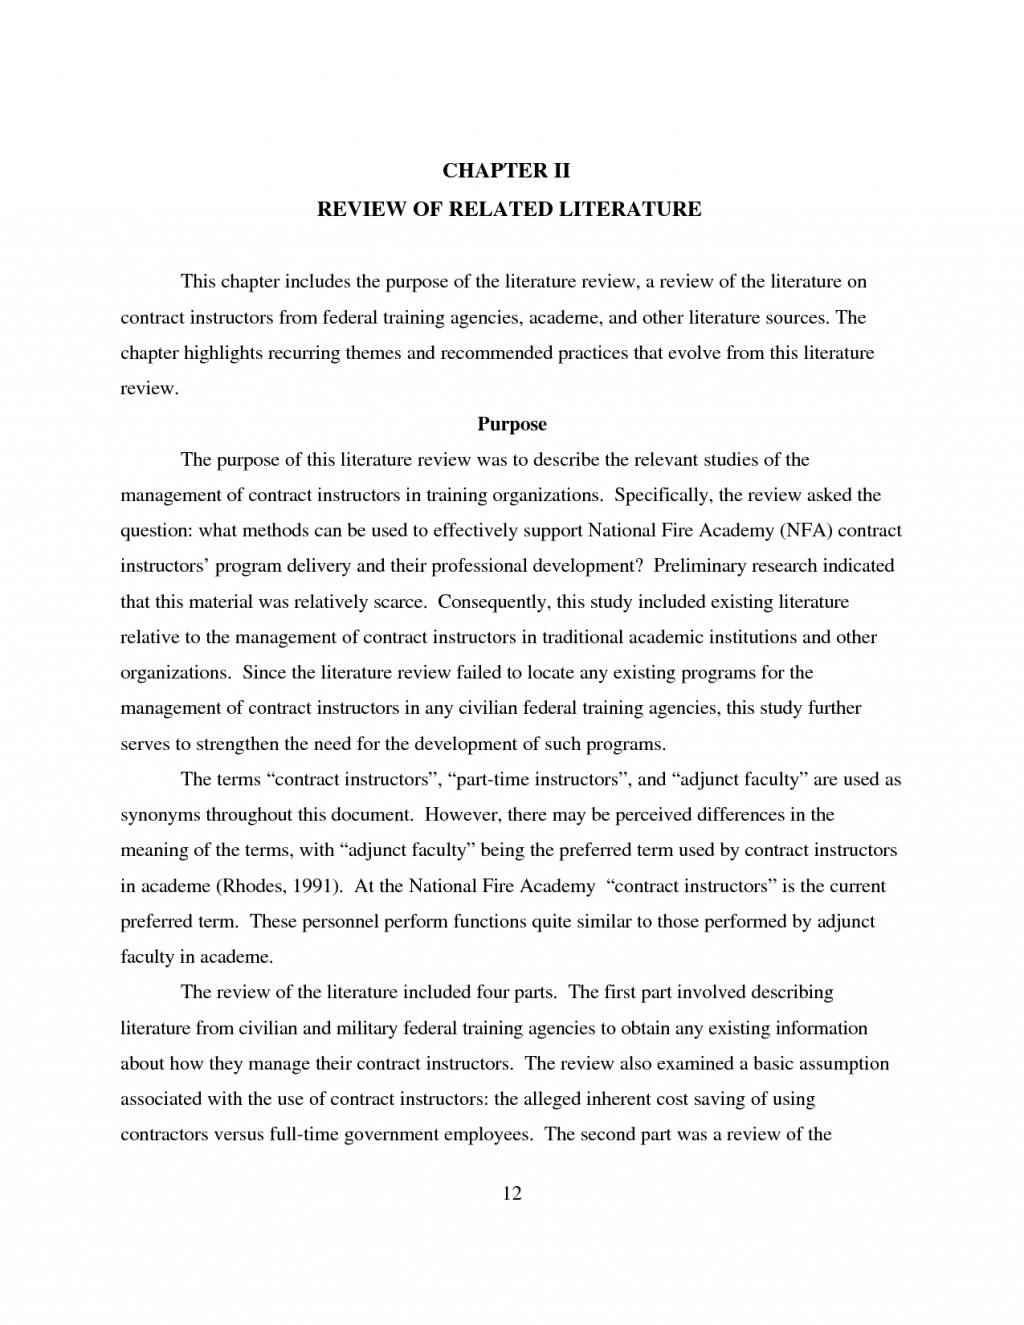 002 Example Research Paper Review Related Literature Imposing Of A Large